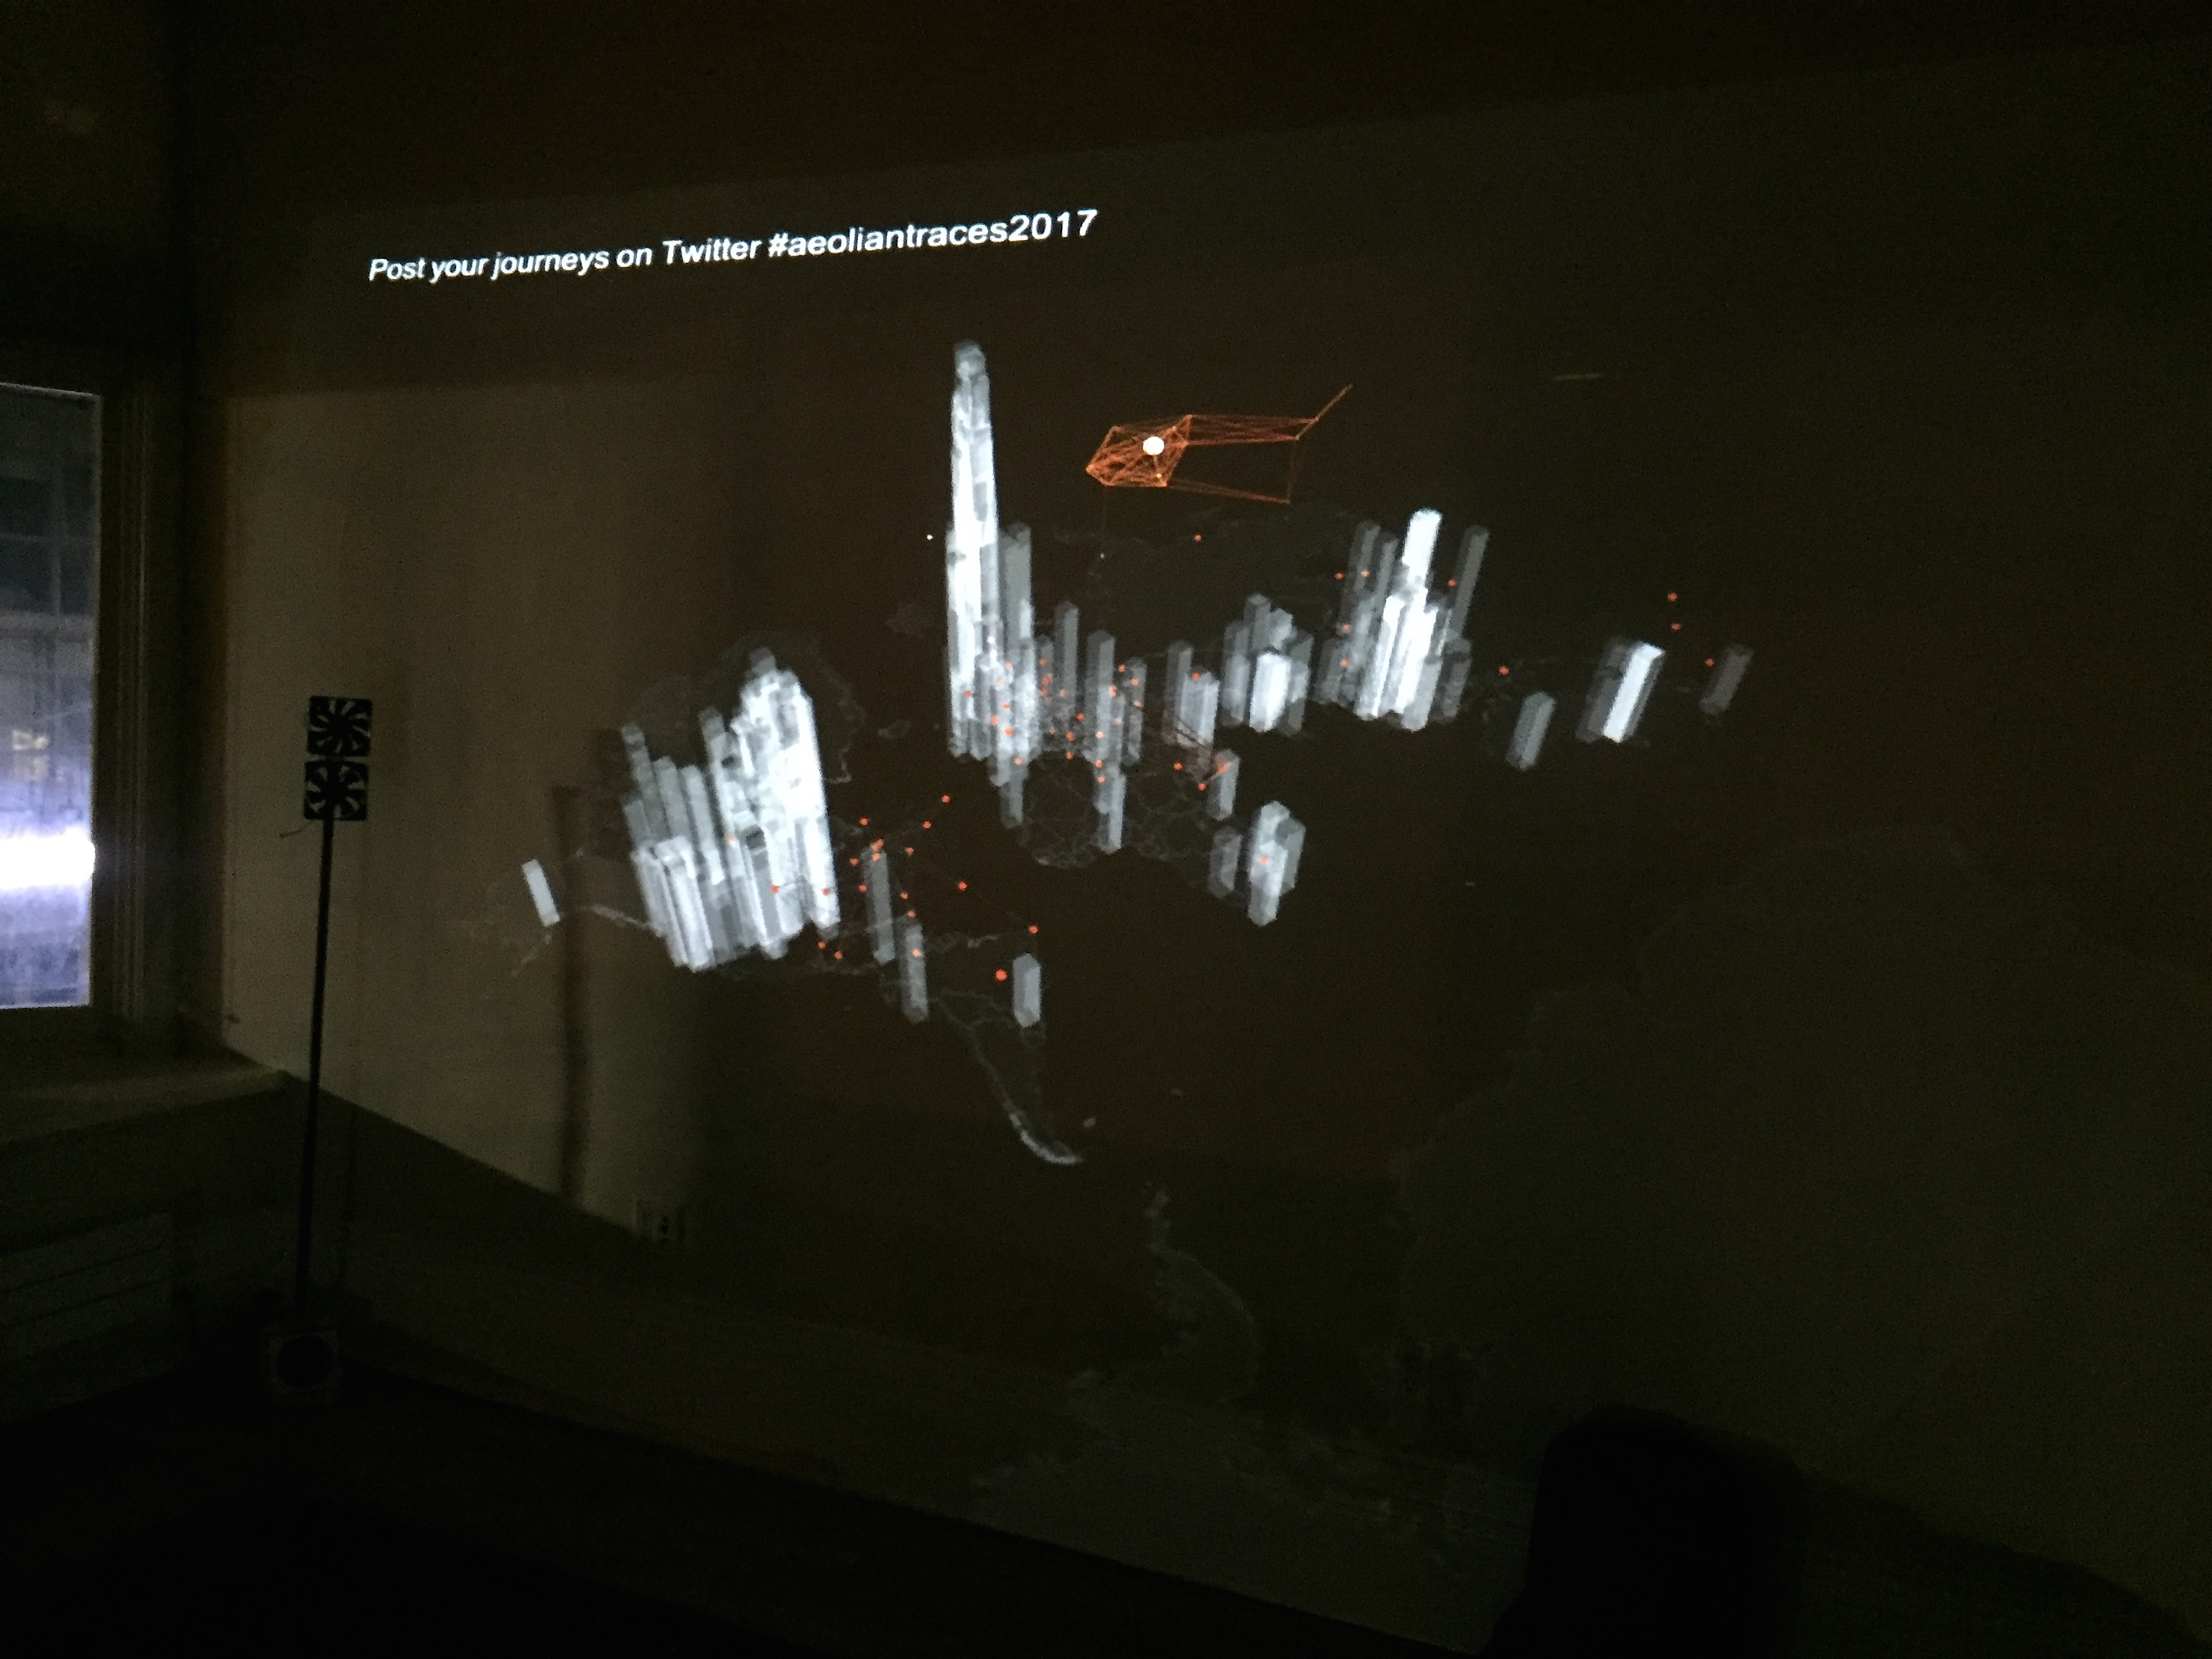 Image from Aeolian Traces by Joel Ong.